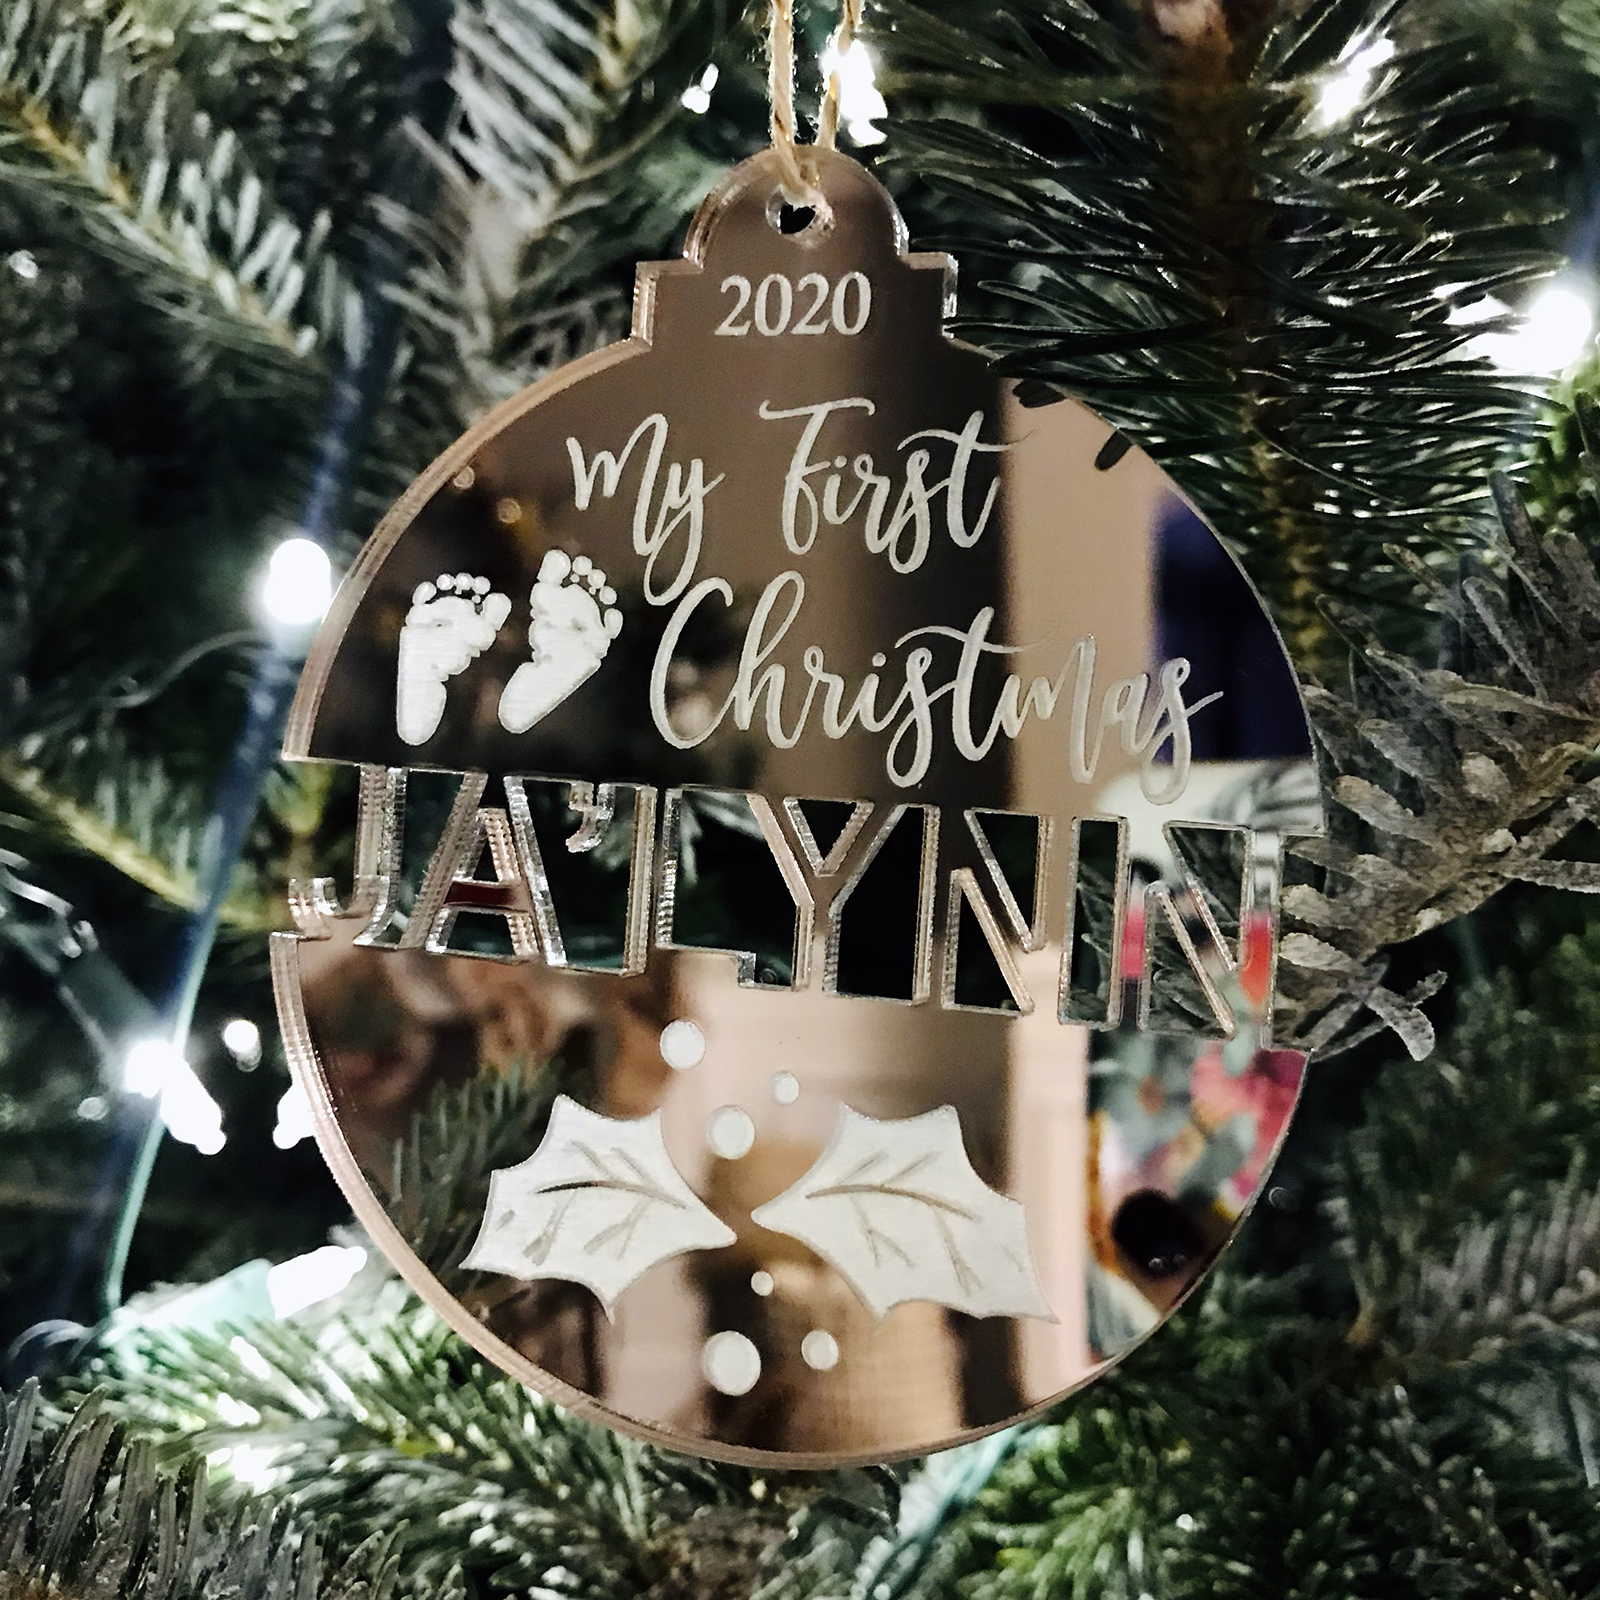 Laser Engraved Snowflake Personalized Laser Cut Ornament 2020 Free Shipping Christmas Tree Ornament